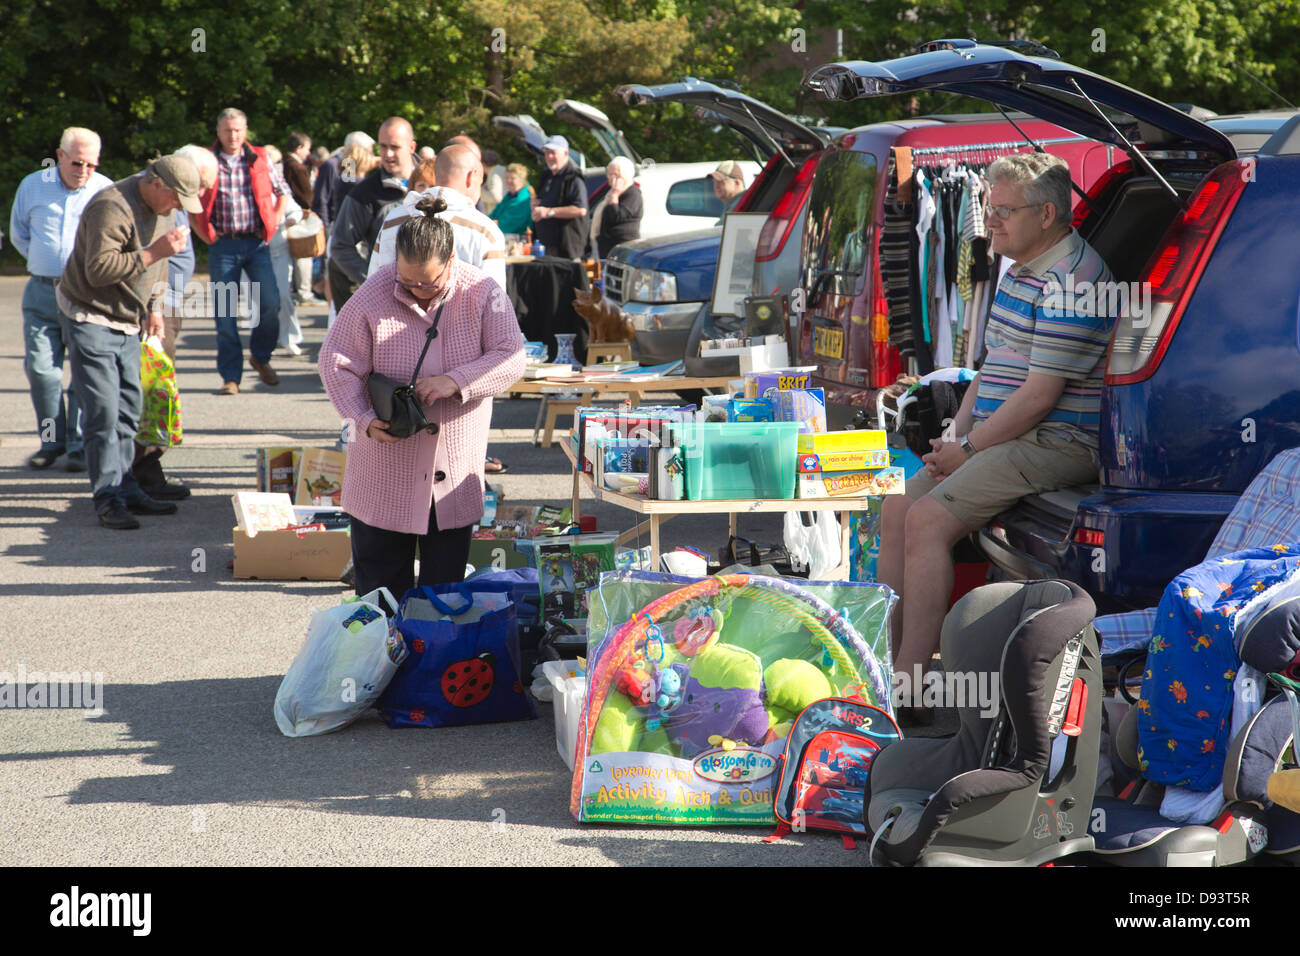 People selling items at a car boot sale in Cowbridge, South Wales, United Kingdom - Stock Image